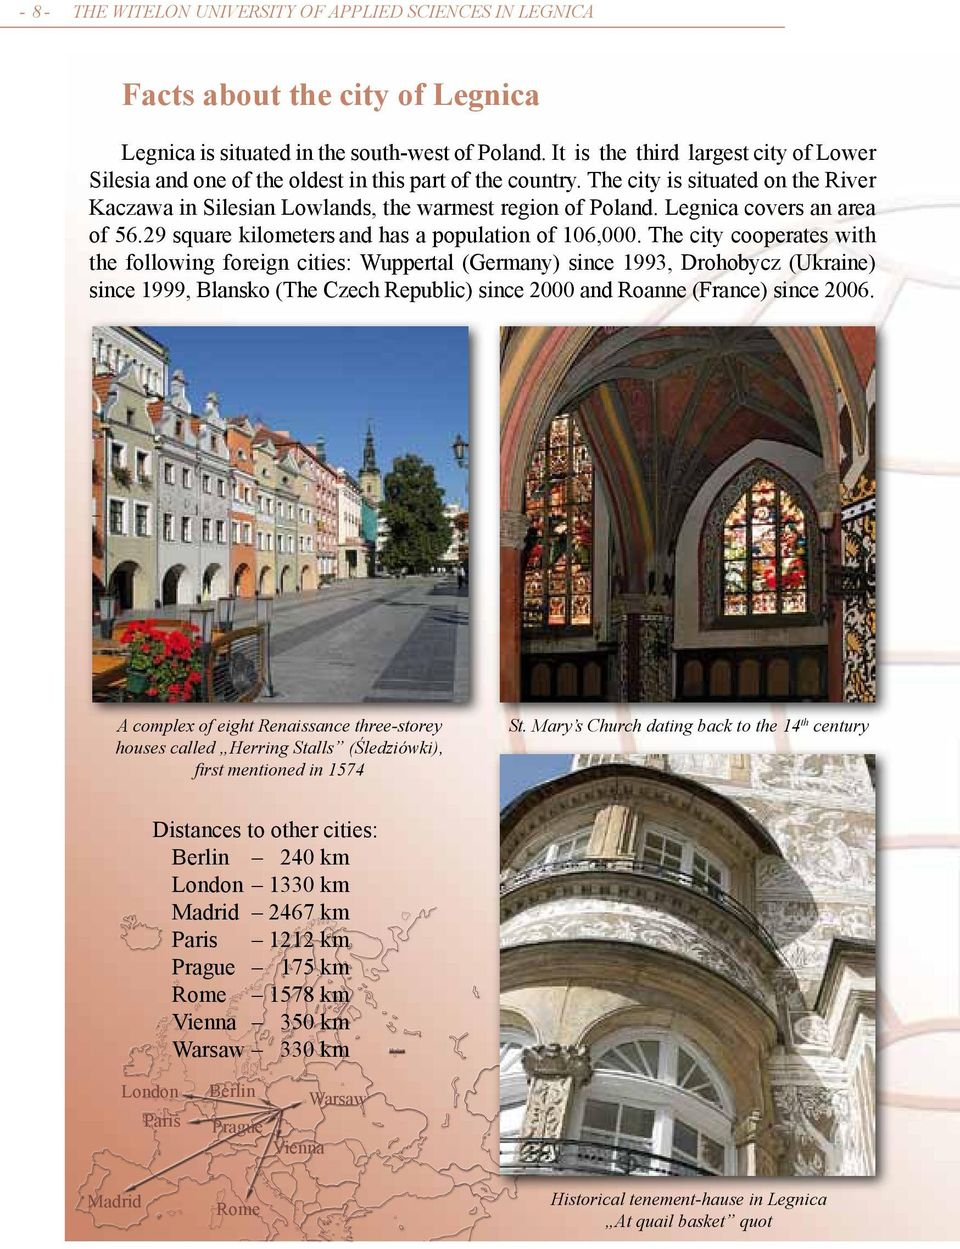 Legnica covers an area of 56.29 square kilometers and has a population of 106,000.